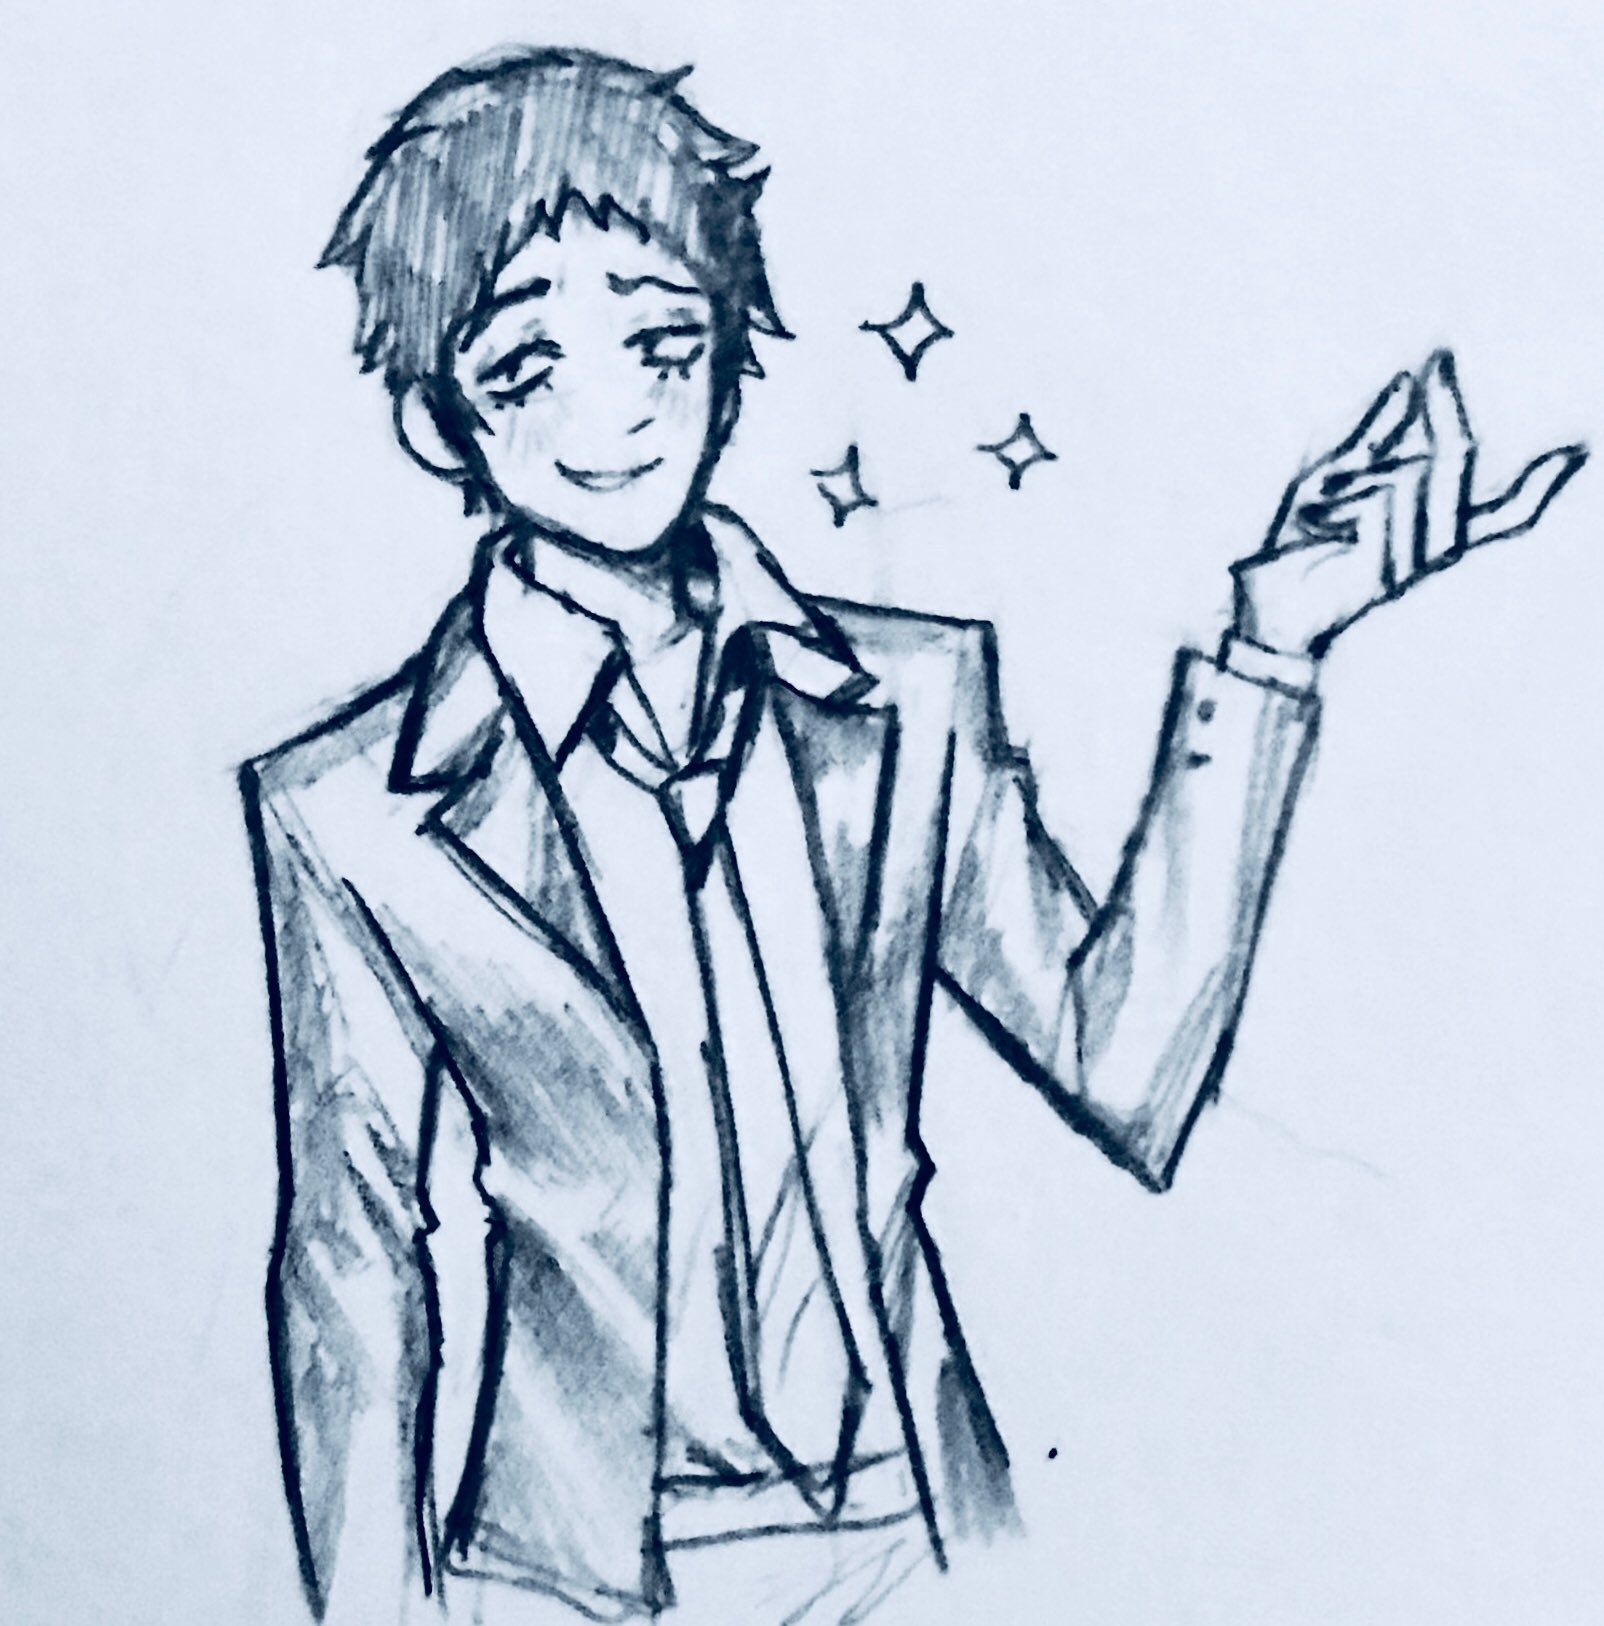 I wanted to draw dojima but I ended up just sketching the garbage man https://t.co/q6yIGD7jIl